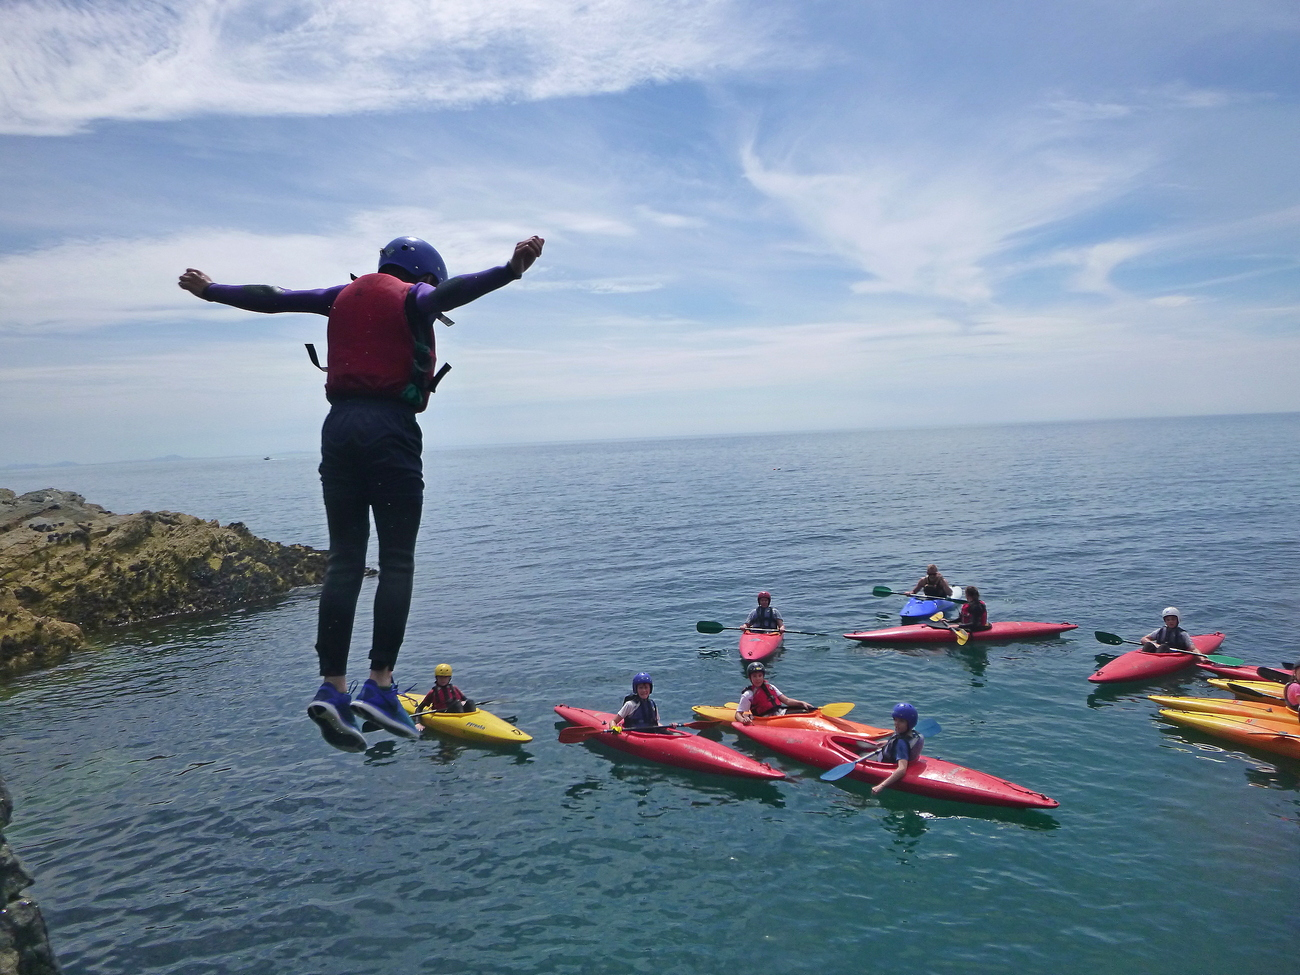 A student enjoying the thrill of Jumping into the sea whilst coasteering, a group of students watch whilst they pass on a sea kayak journey.